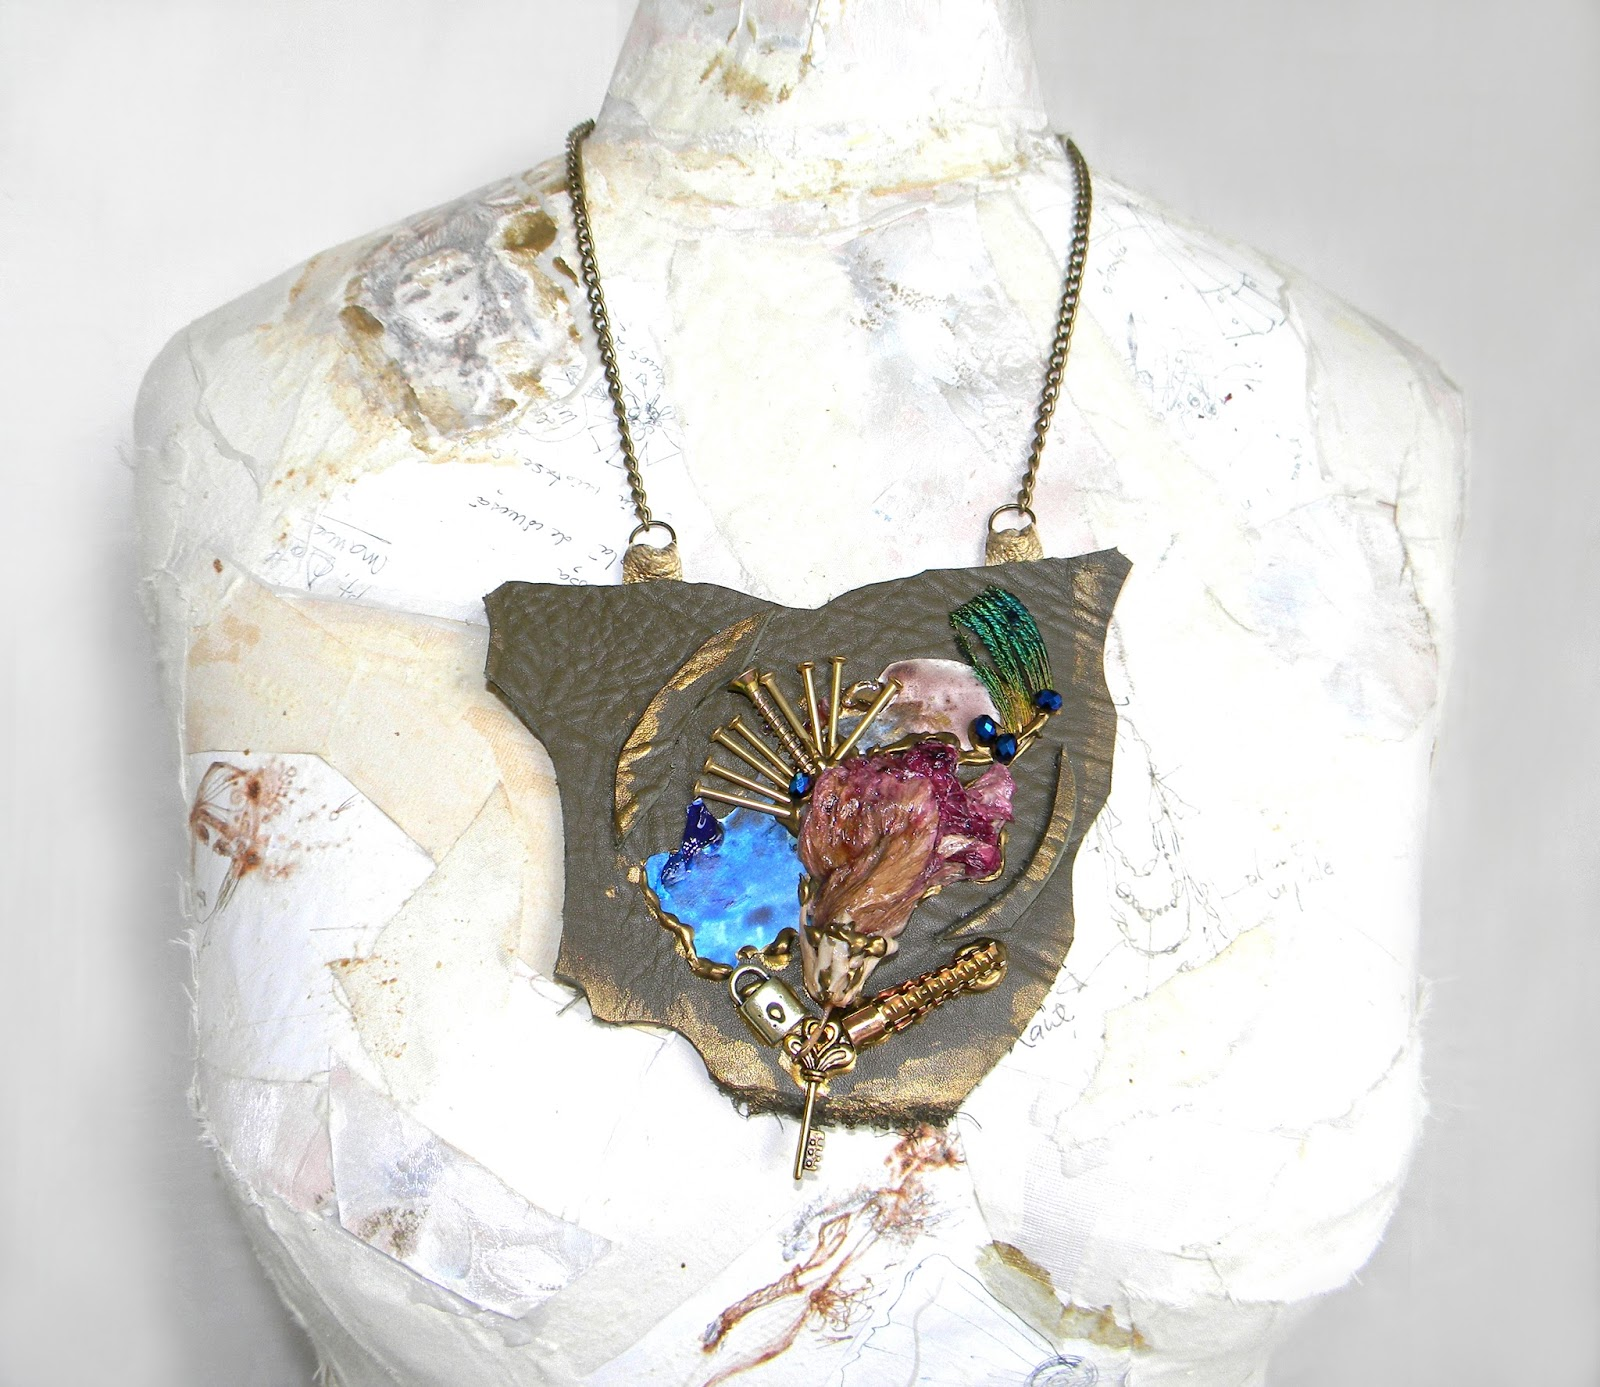 Statement Steampunk Necklace Bib Fashion Collage Leather Jewelry Upcycled Jewelry with Organic Flower